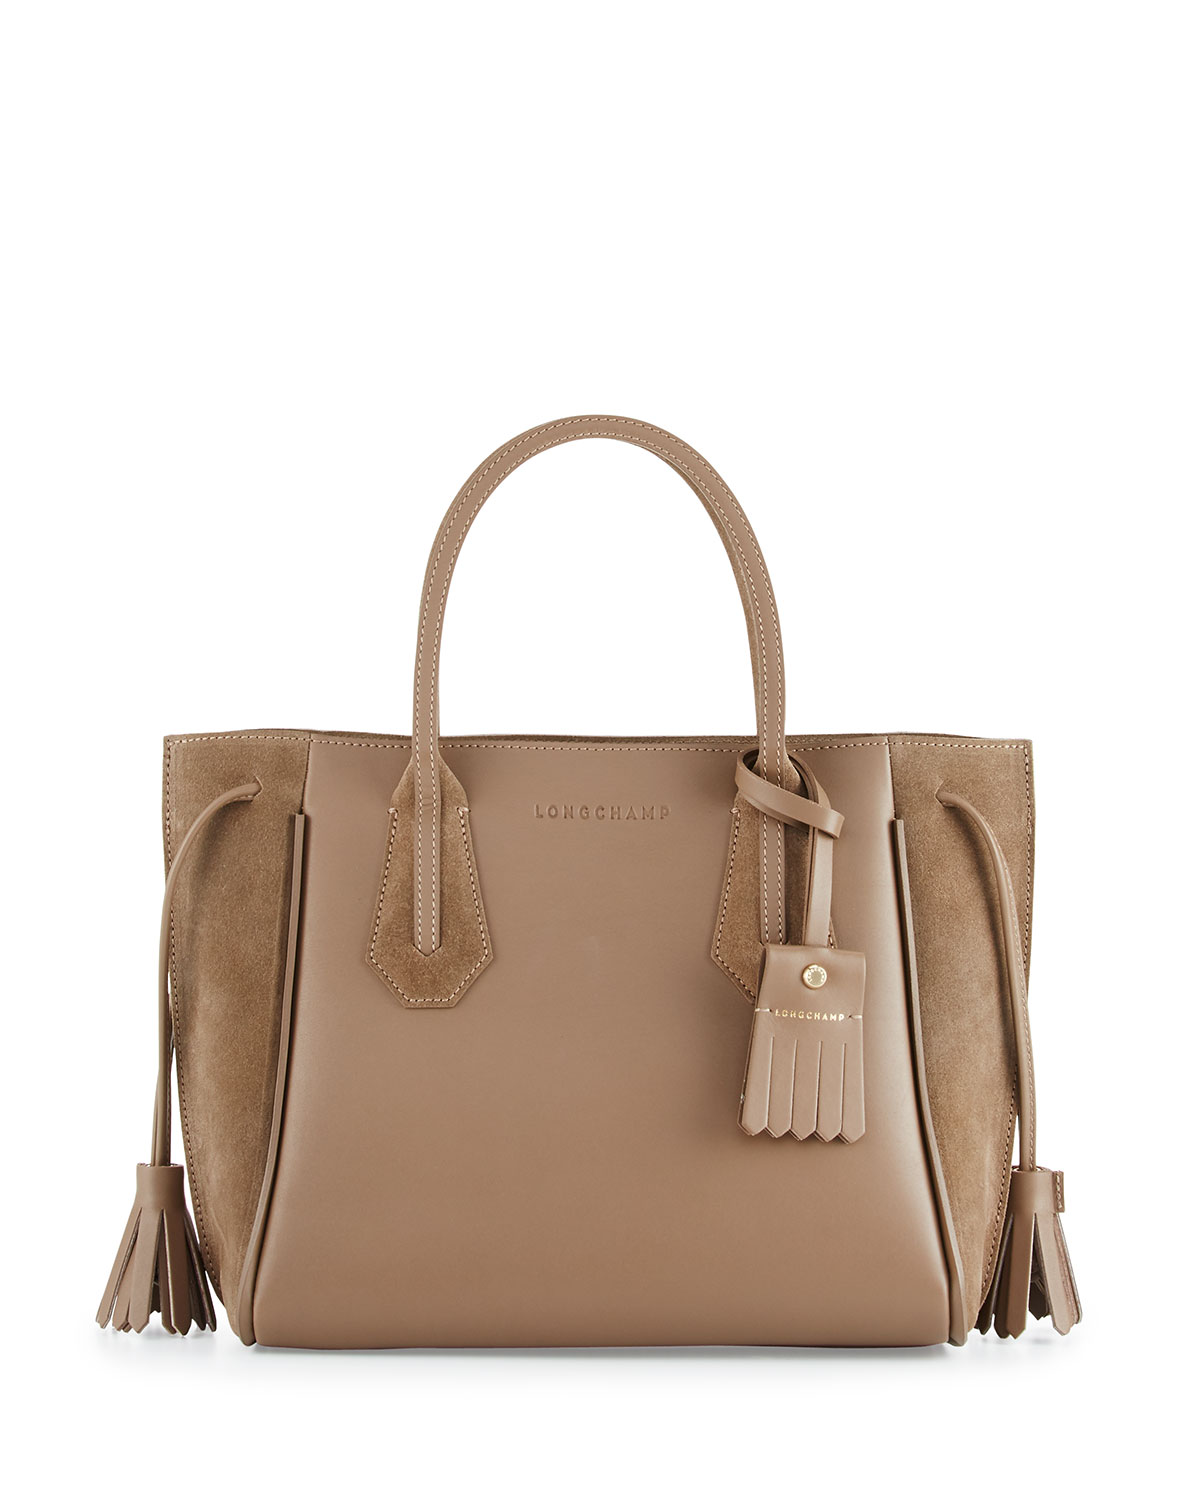 ad582991b Longchamp Penelope Small Leather & Suede Tote Bag, Taupe   Neiman Marcus